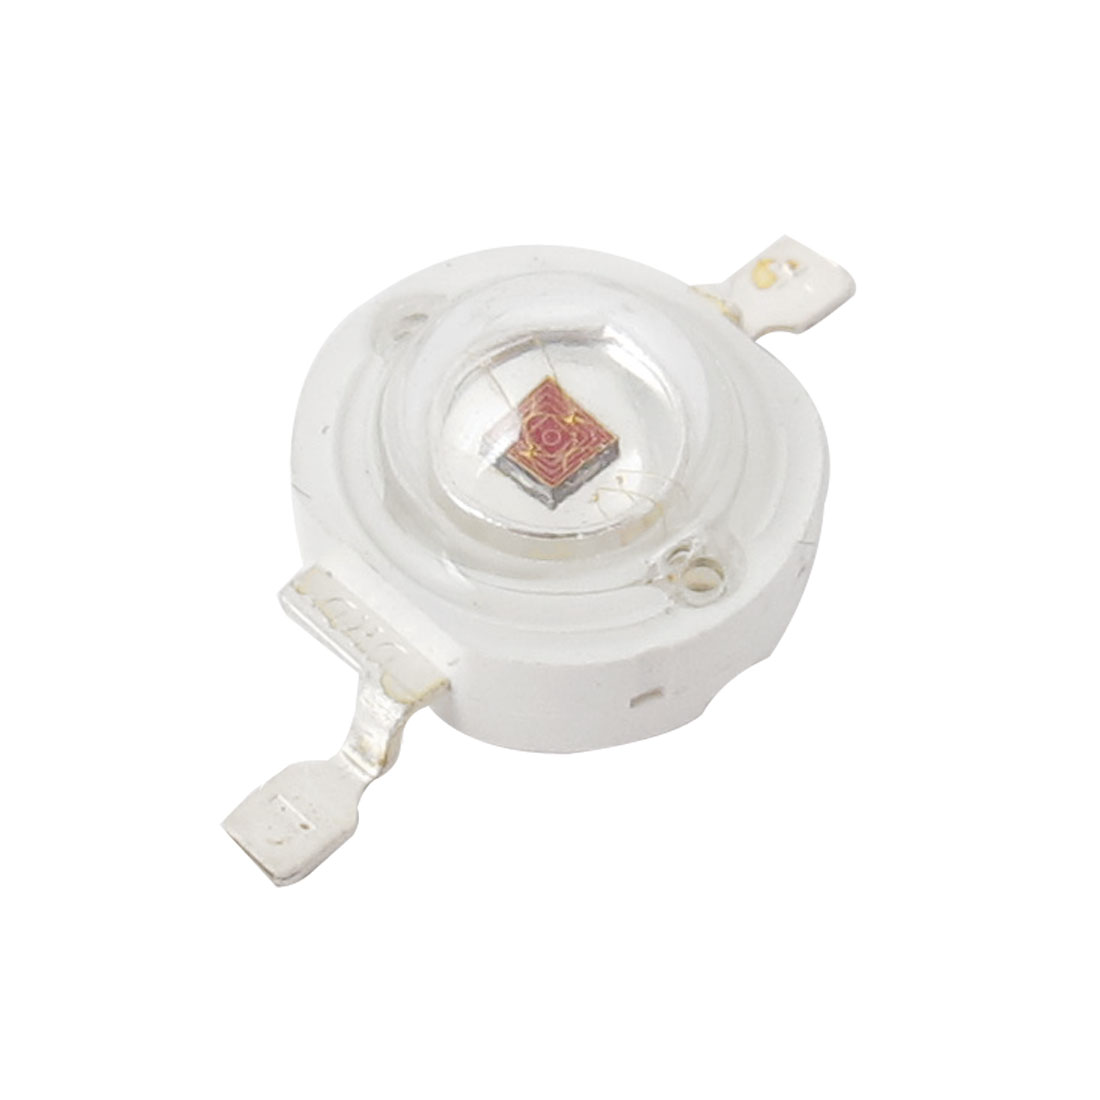 3W Watt High Power LED Bright Light Red Bulb Bead Emitter 65-80LM 2.2-2.6V